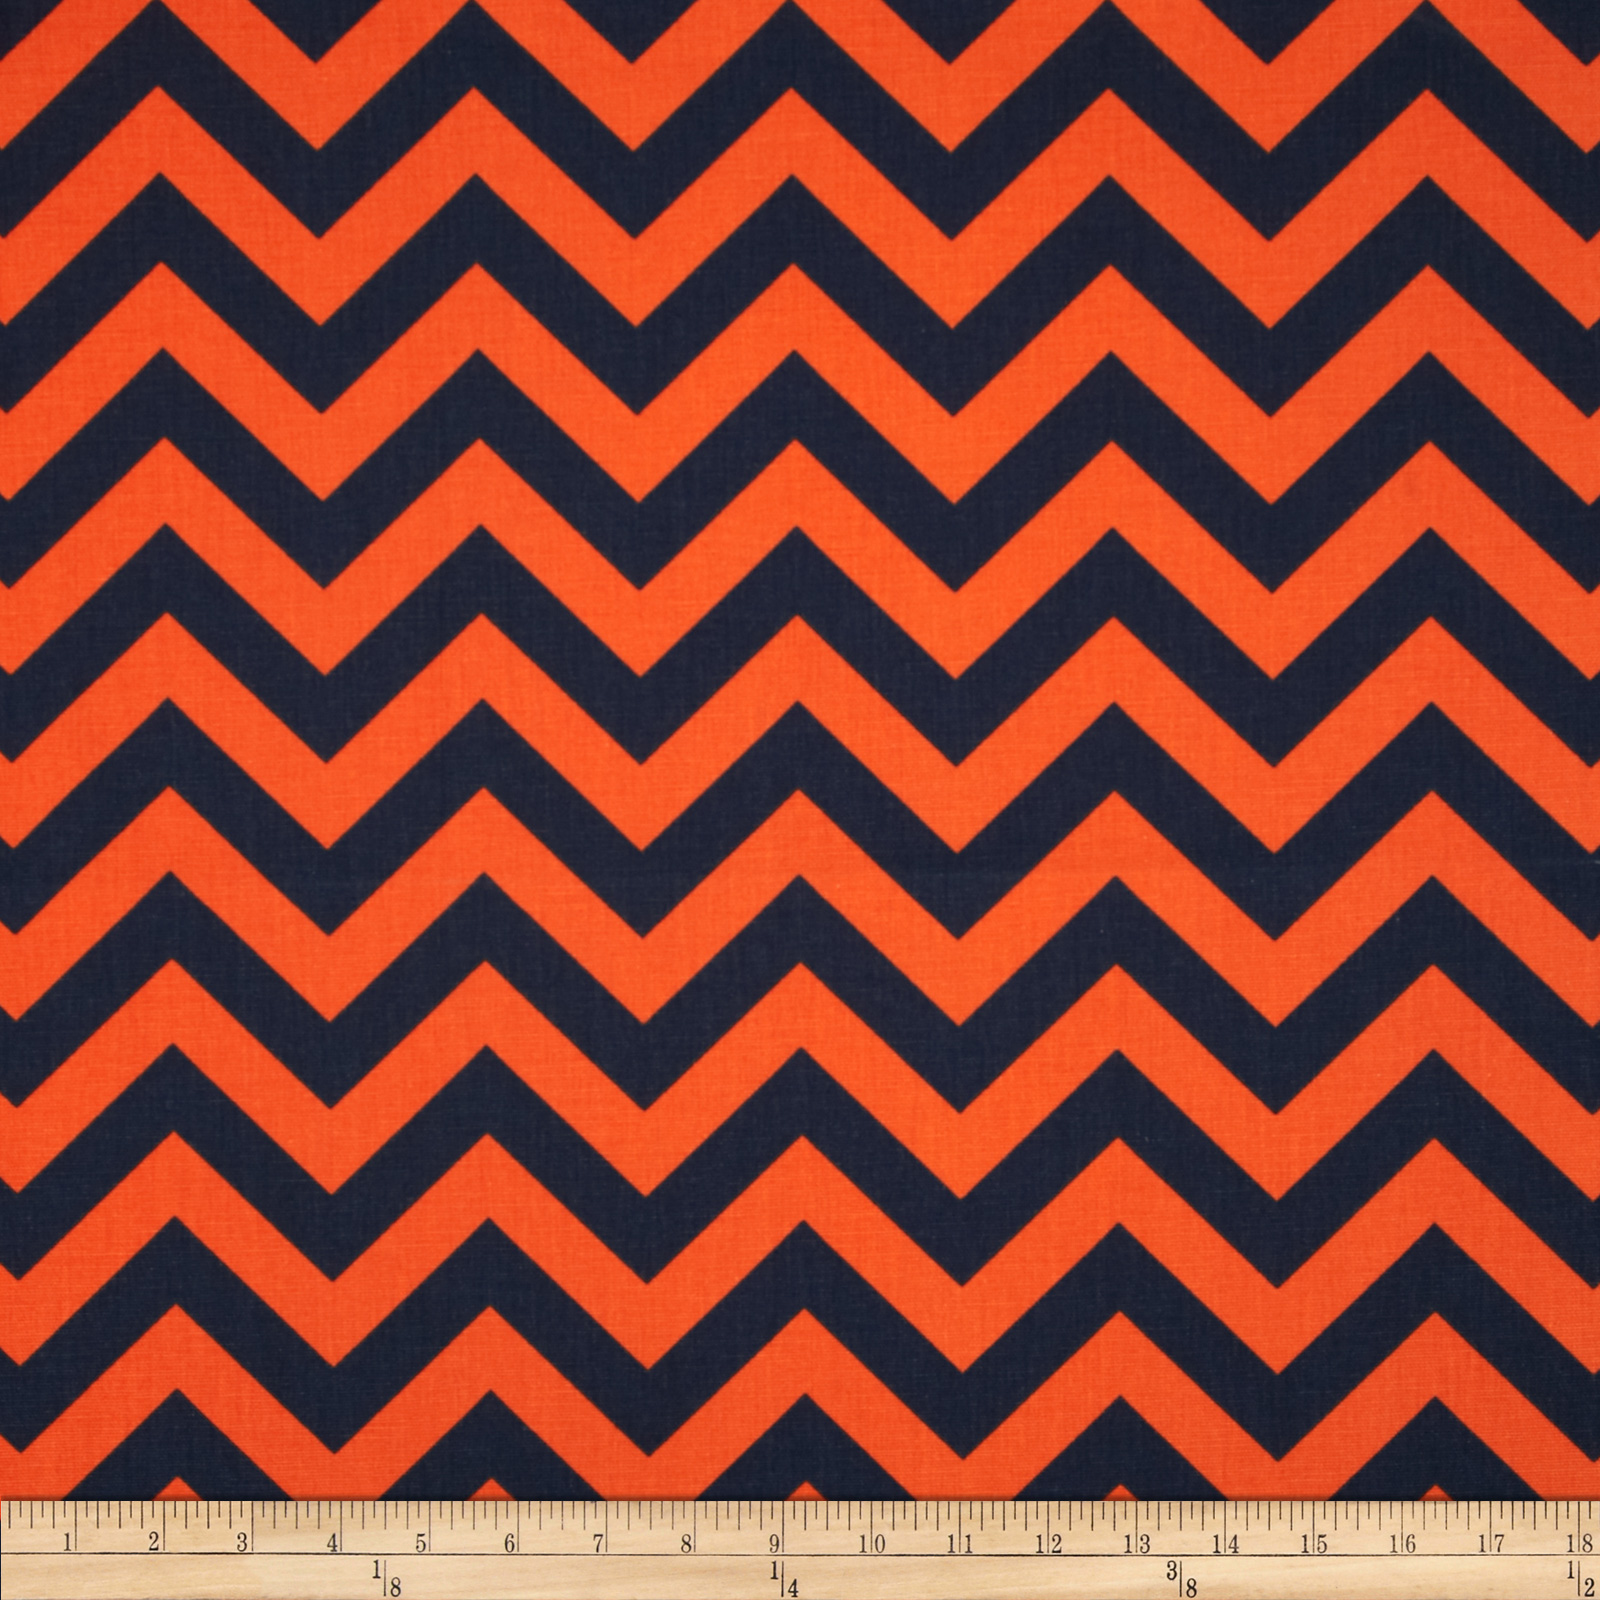 Premier Prints Zig Zag Navy/Orange Fabric